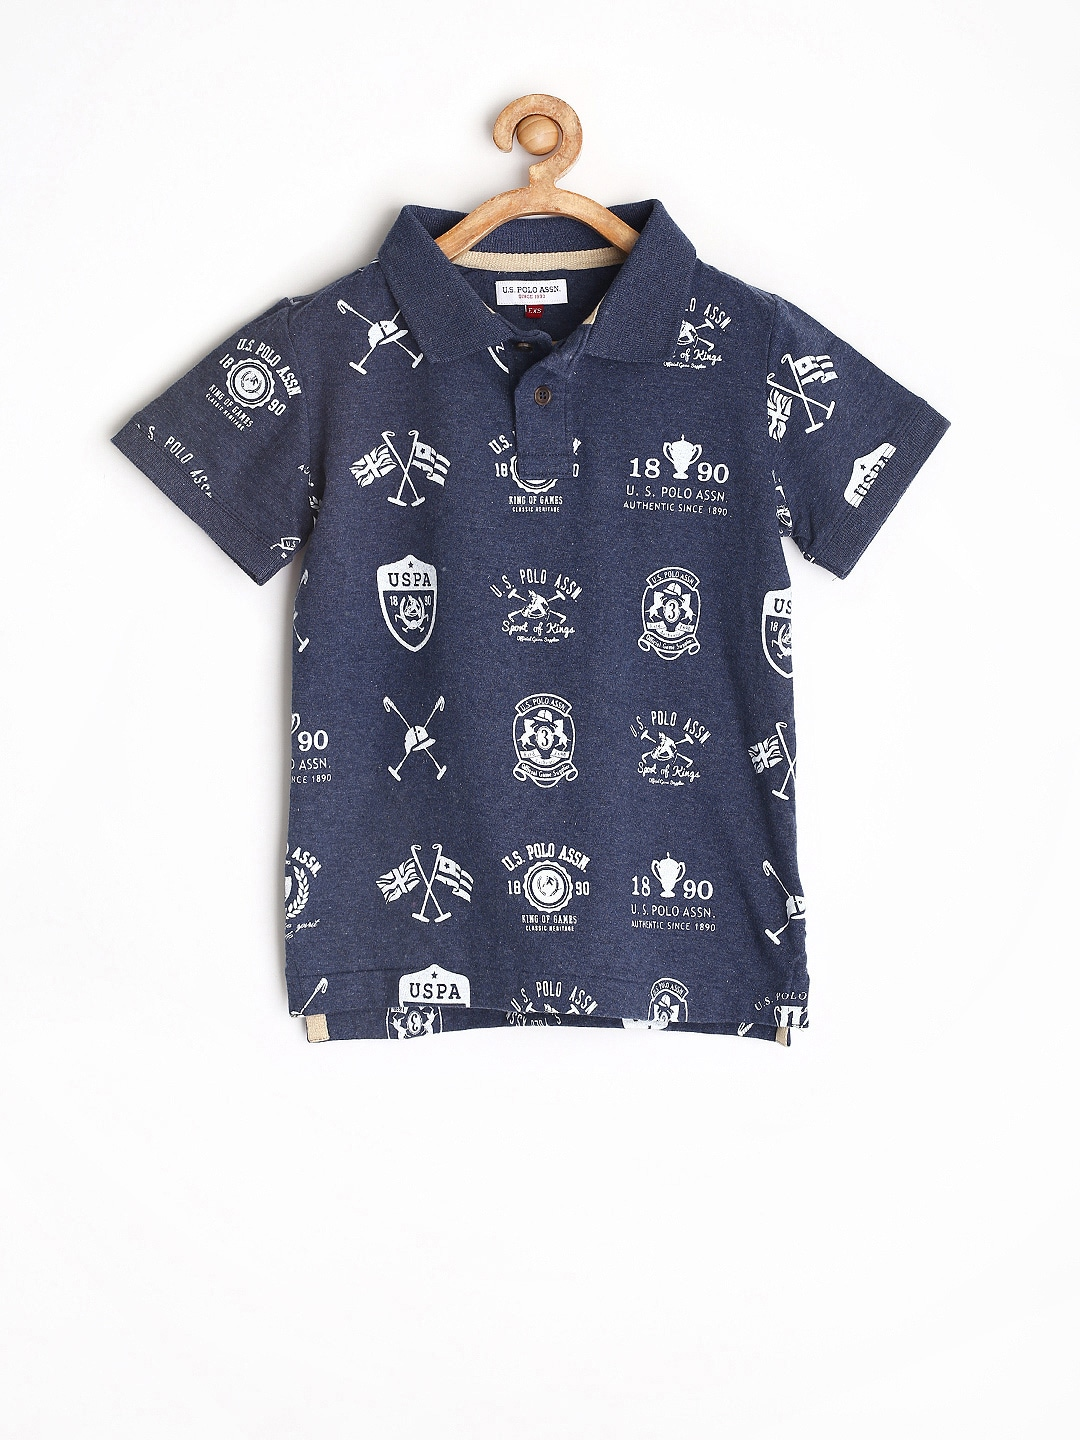 U.S. Polo Assn. Kids Boys Navy Printed Polo T-shirt